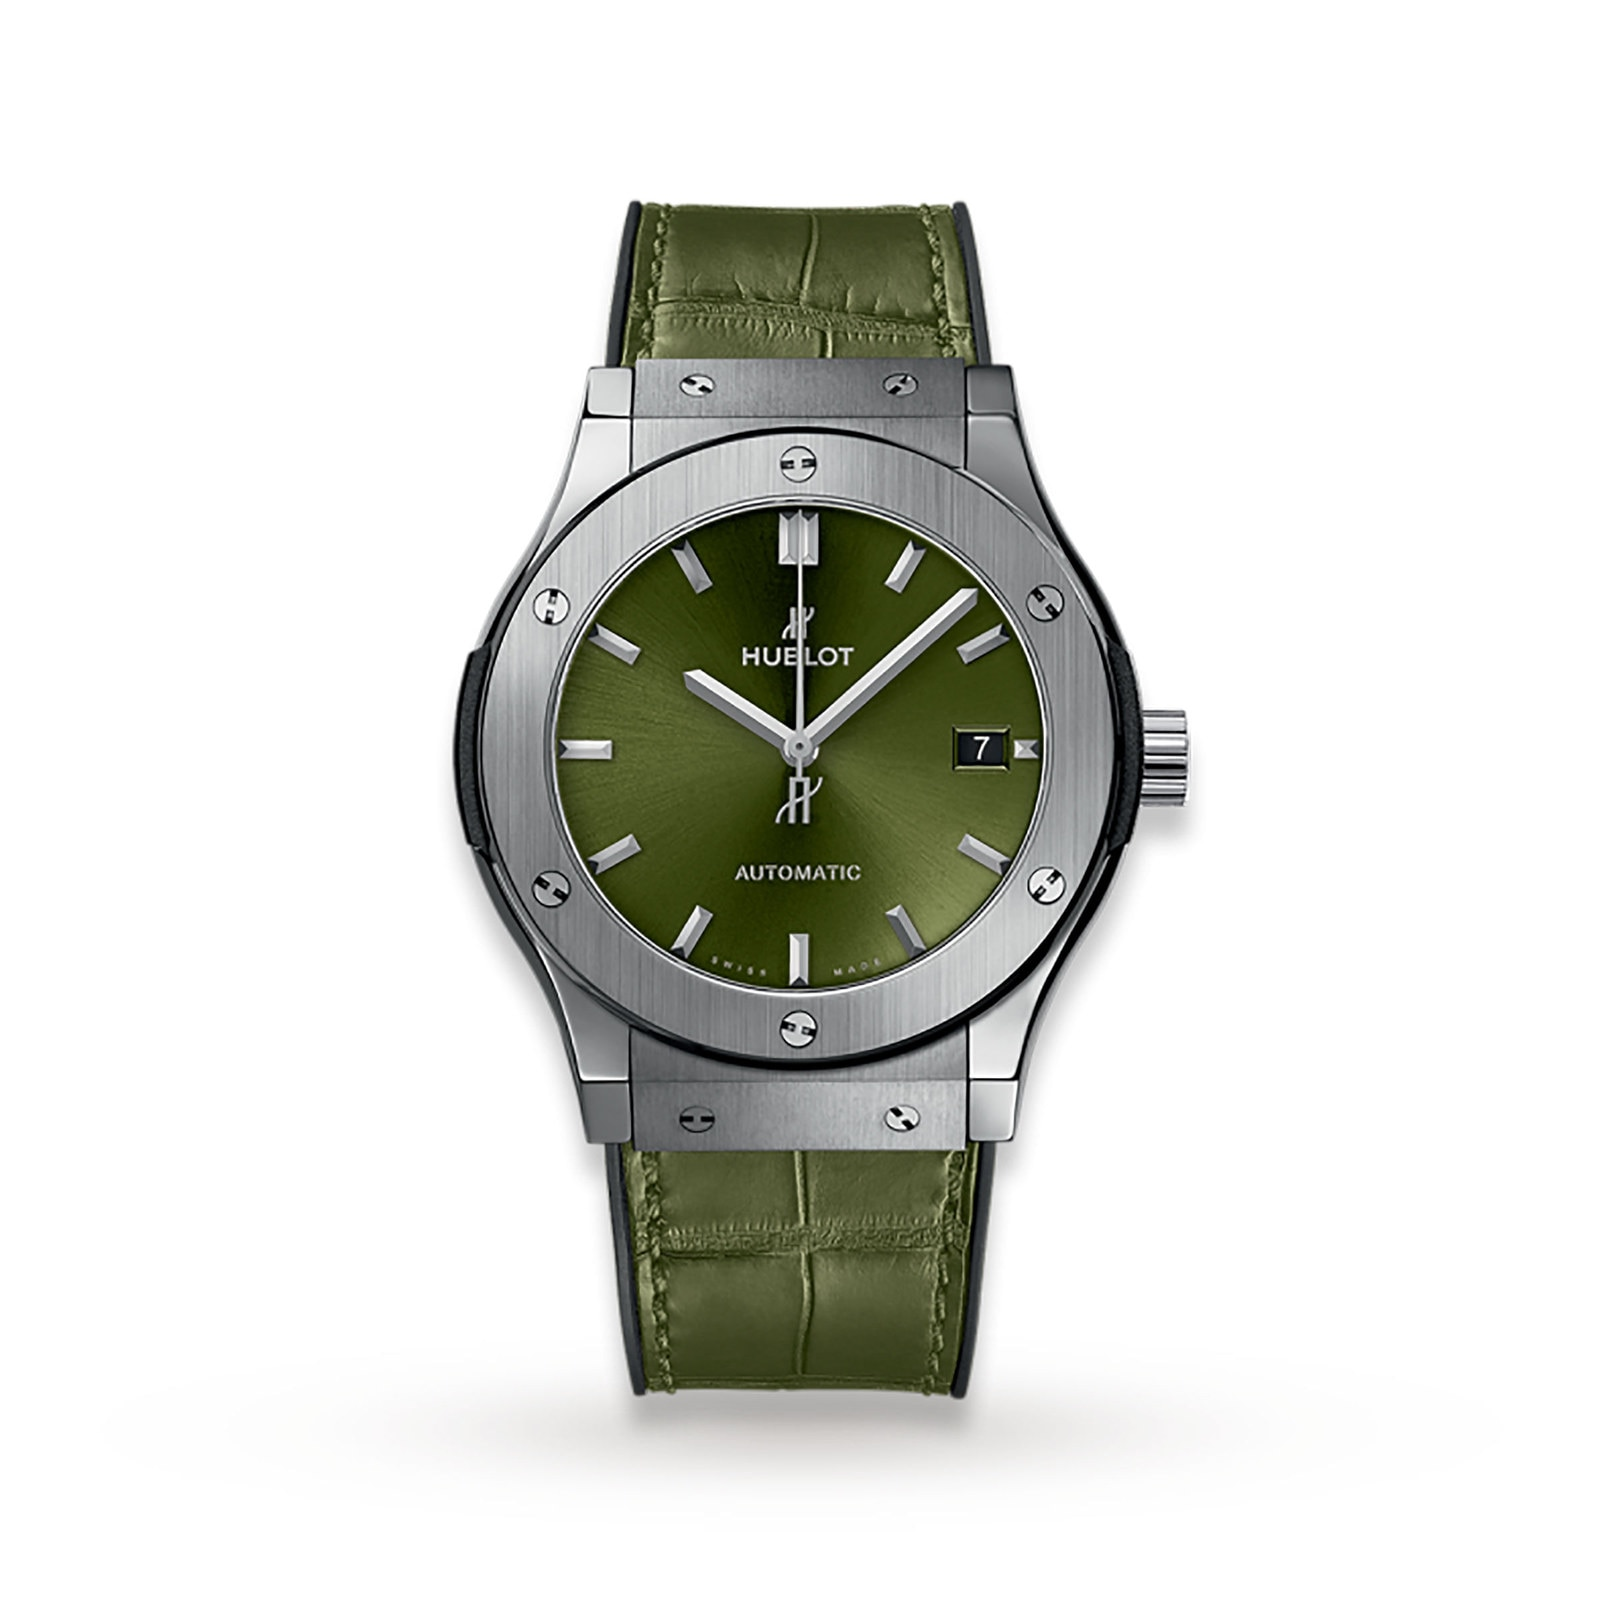 Hublot Hublot Classic Fuison Titanium Green 45mm Mens Watch